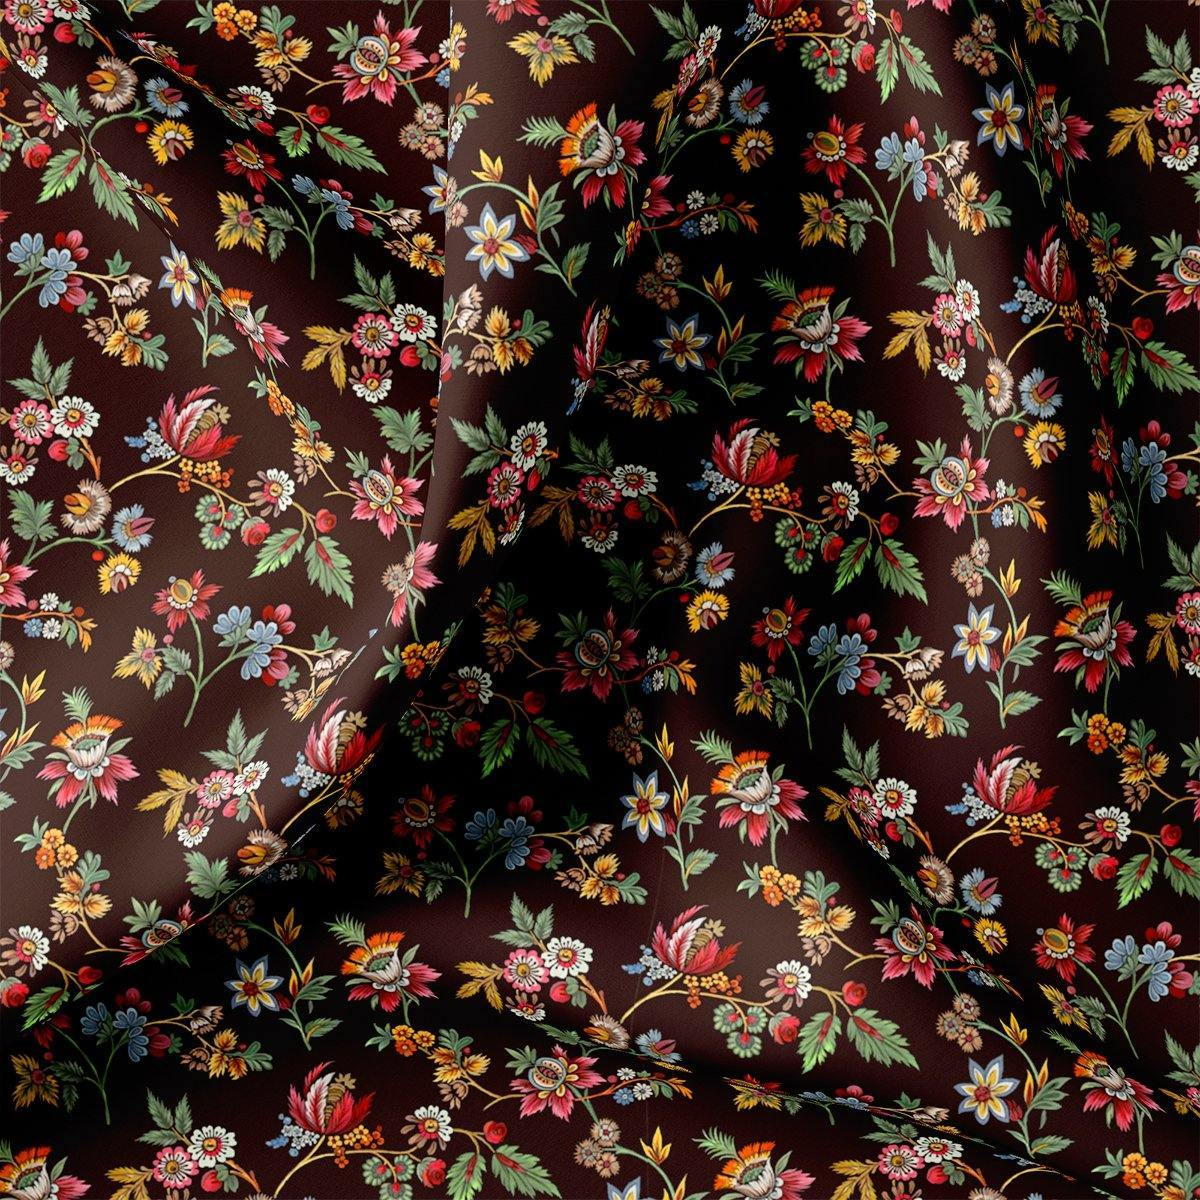 Small Wild Flower Motif Digital Printed Fabric - FAB VOGUE Studio. Shop Fabric @ www.fabvoguestudio.com